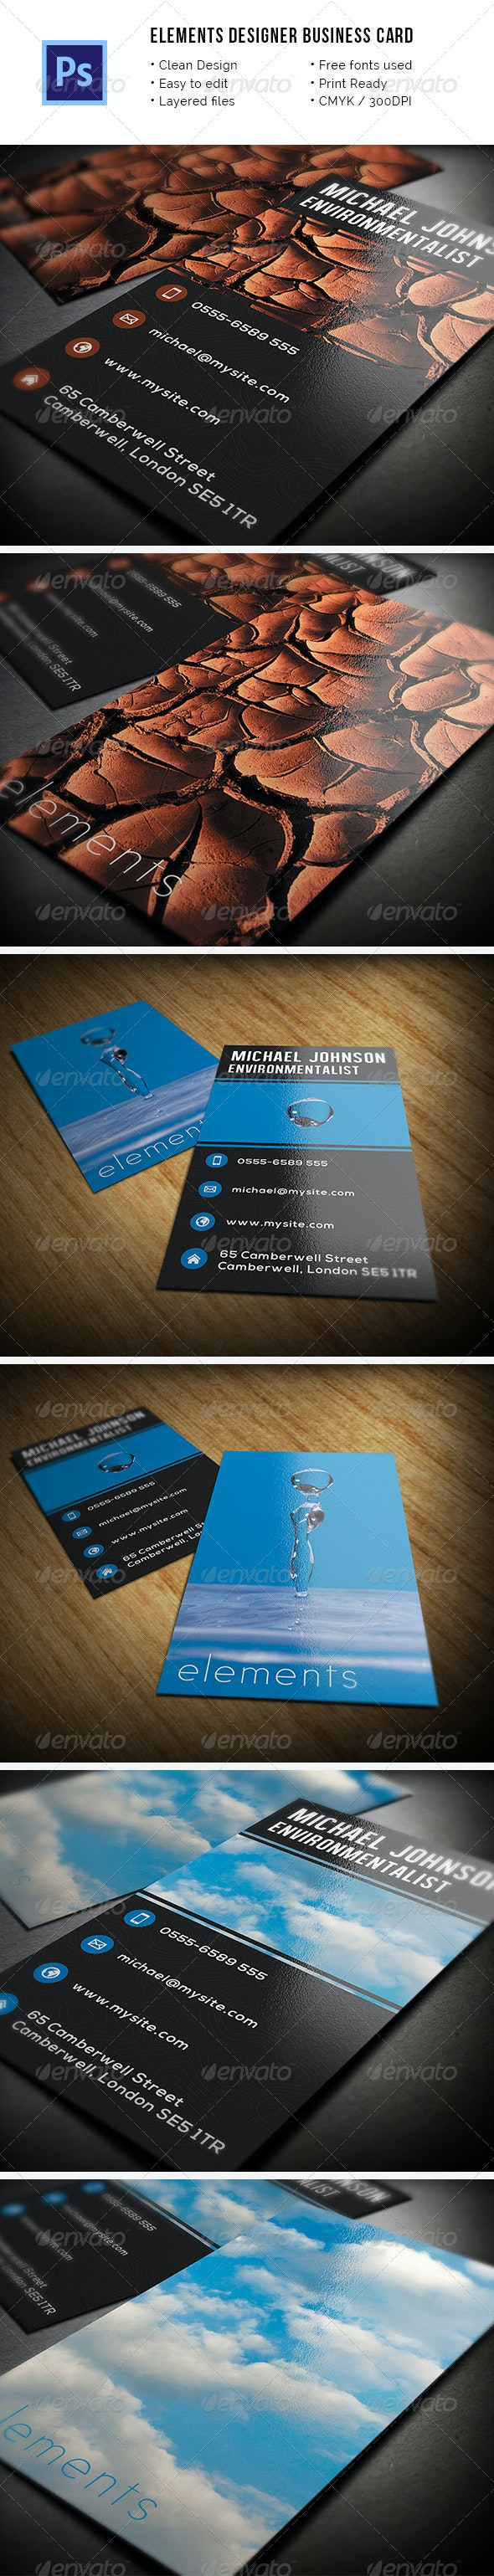 Elements Business Card - Creative Business Cards